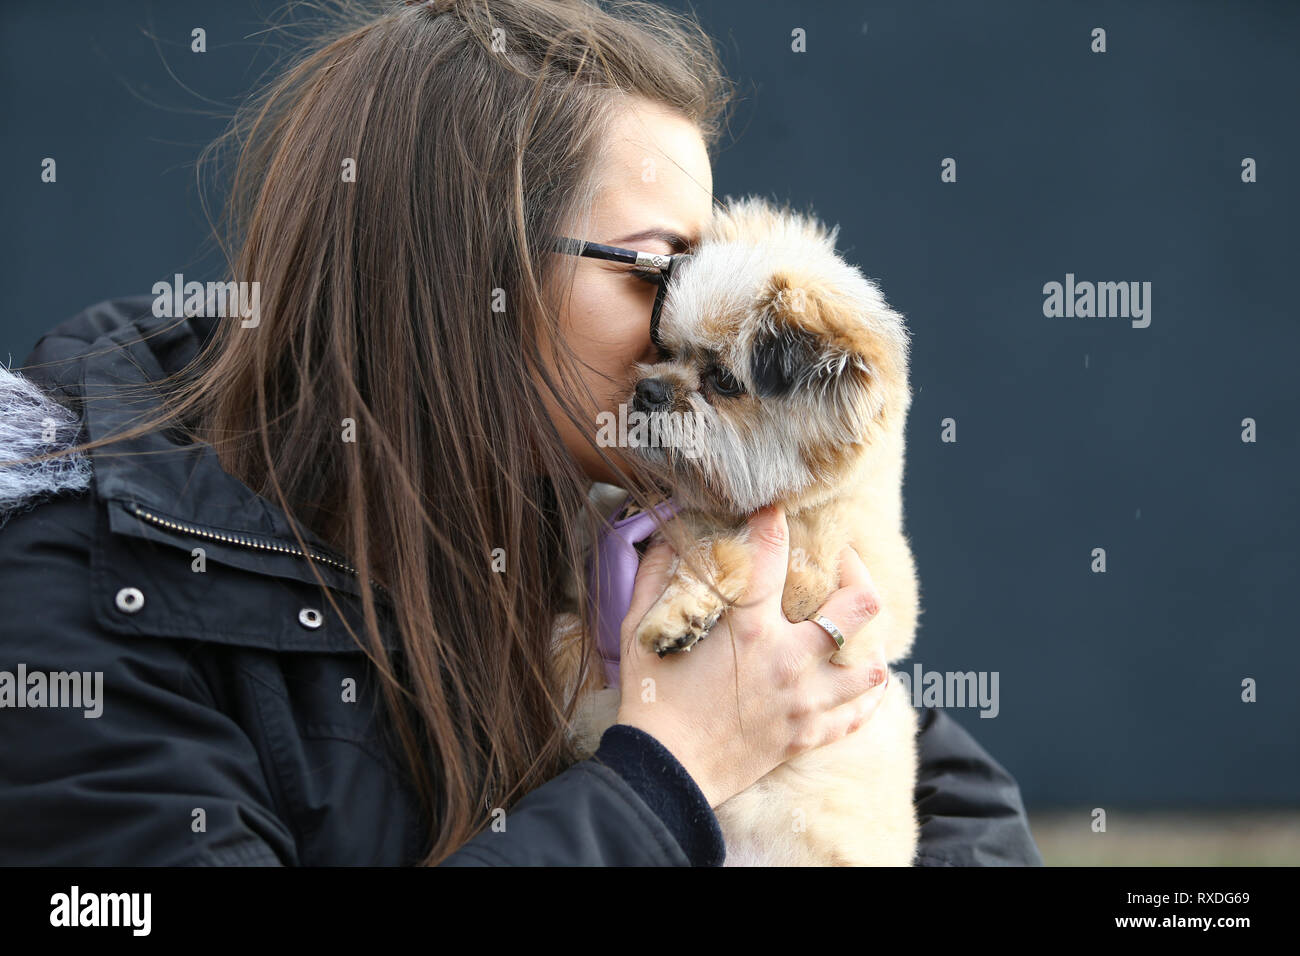 Birmingham, UK. 9th March, 2019. Dogs arrive with their owners on day three of Crufts, the world's largest dog show, at the NEC Birmingham. Minnie the Shipom is held by her owner Lauren. Peter Lopeman/Alamy Live News - Stock Image